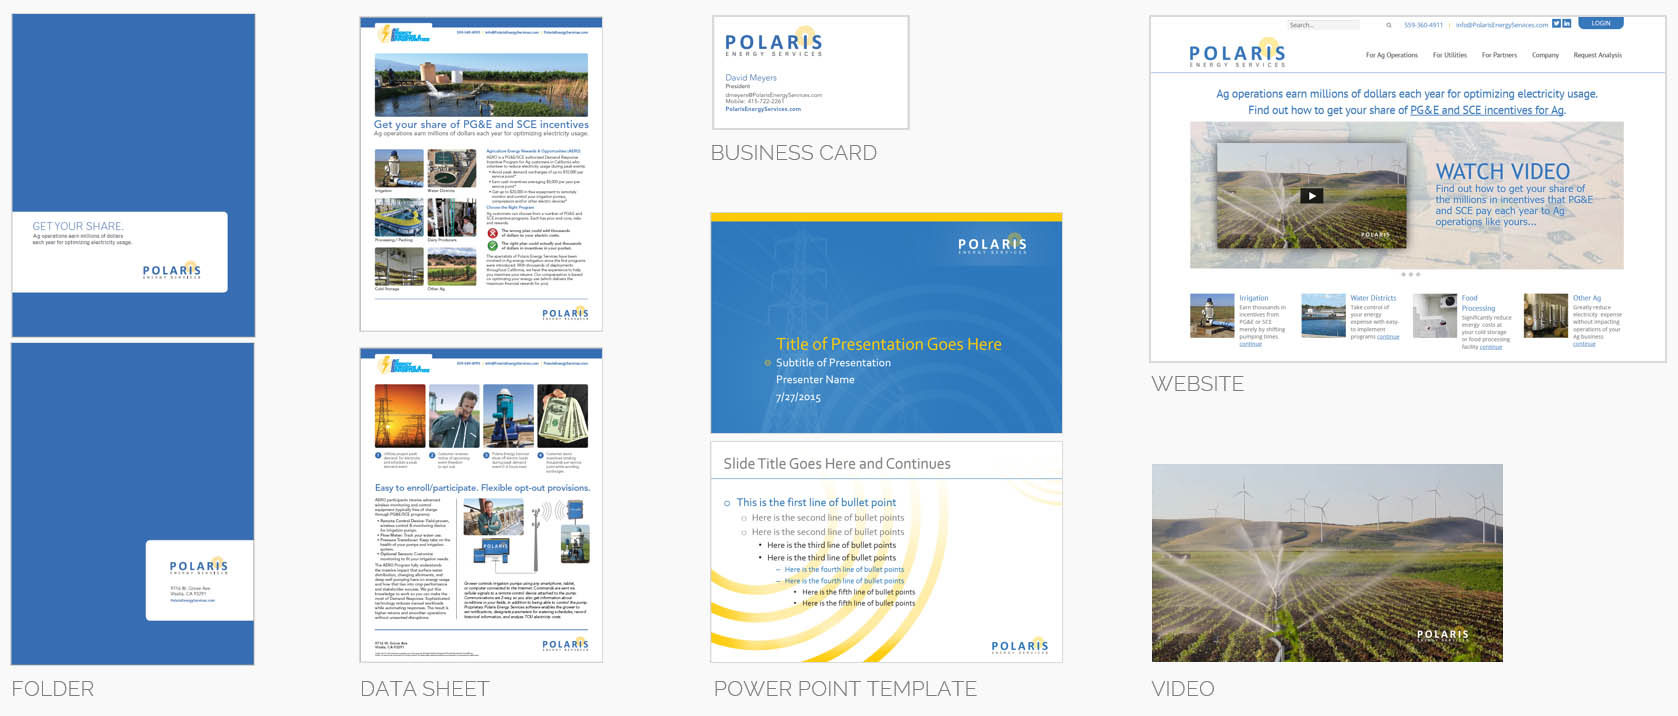 image-852429-Polaris-Energy-Services-Branding-Collateral-Trade-Show-Website-c9f0f.jpg